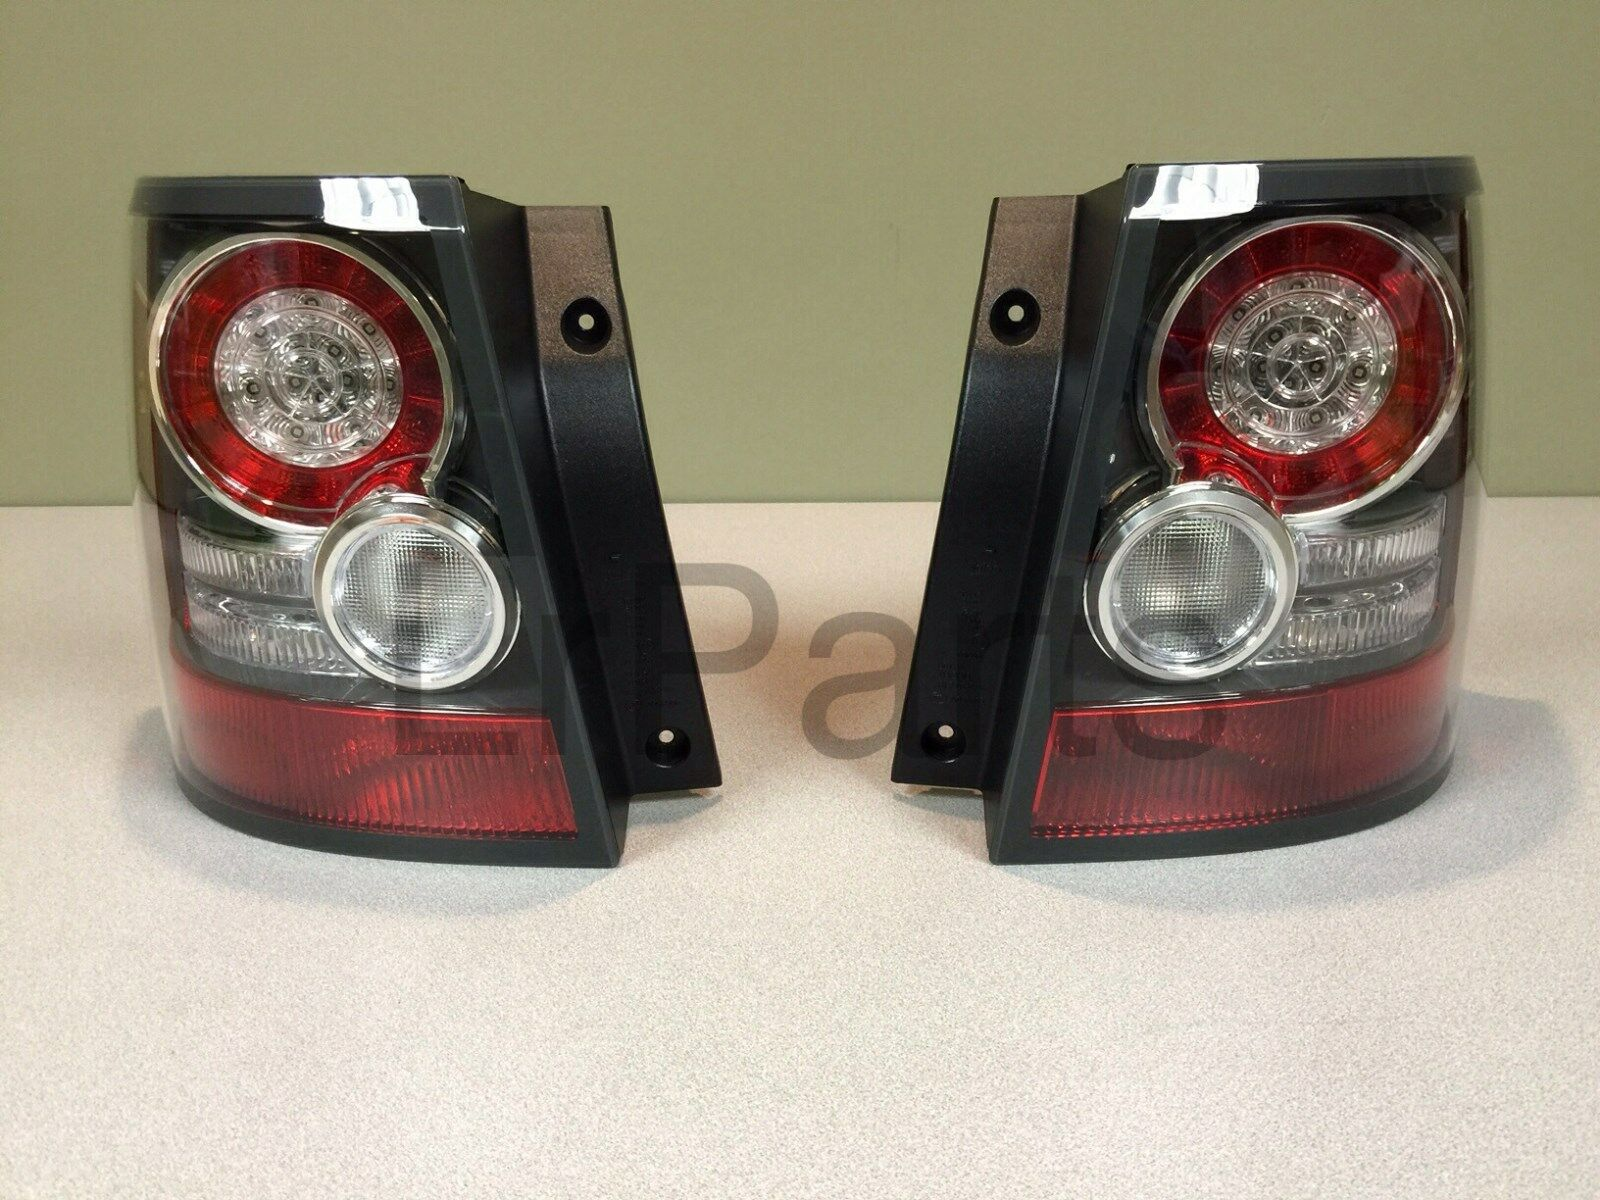 land rover range rover sport 10 13 rear tail lamp light. Black Bedroom Furniture Sets. Home Design Ideas